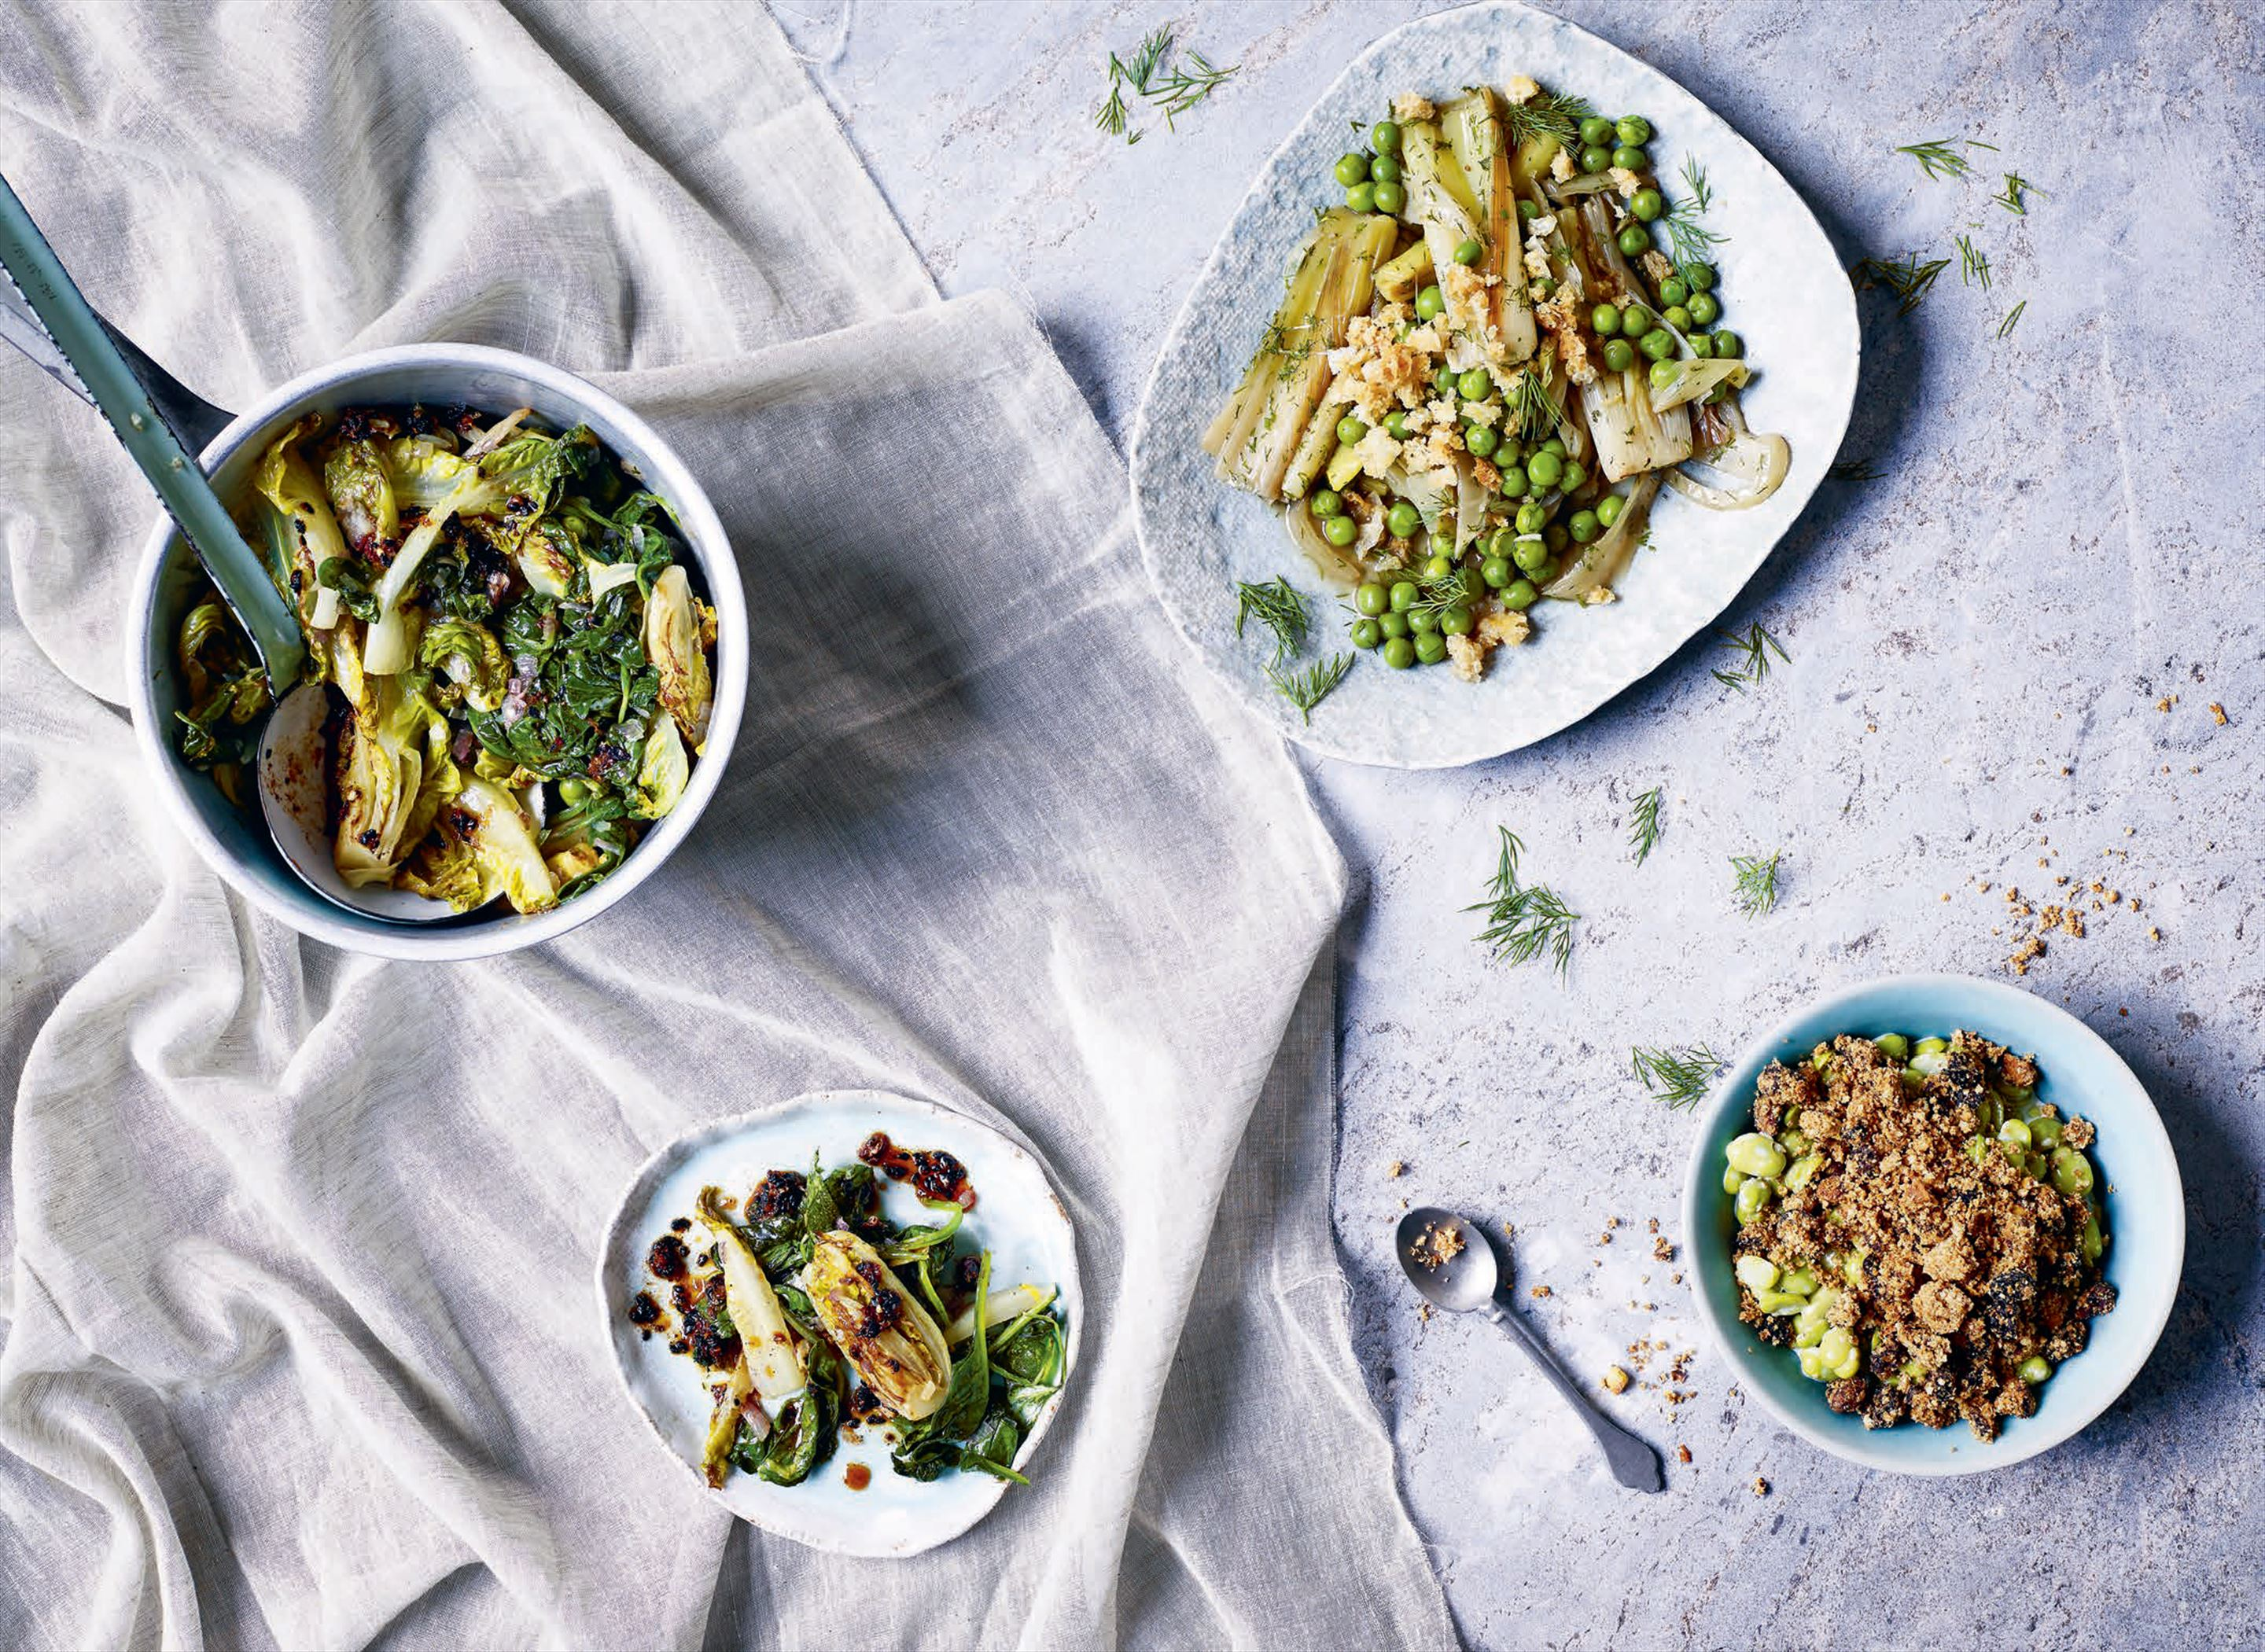 Broad beans with sultana and pistachio crumble